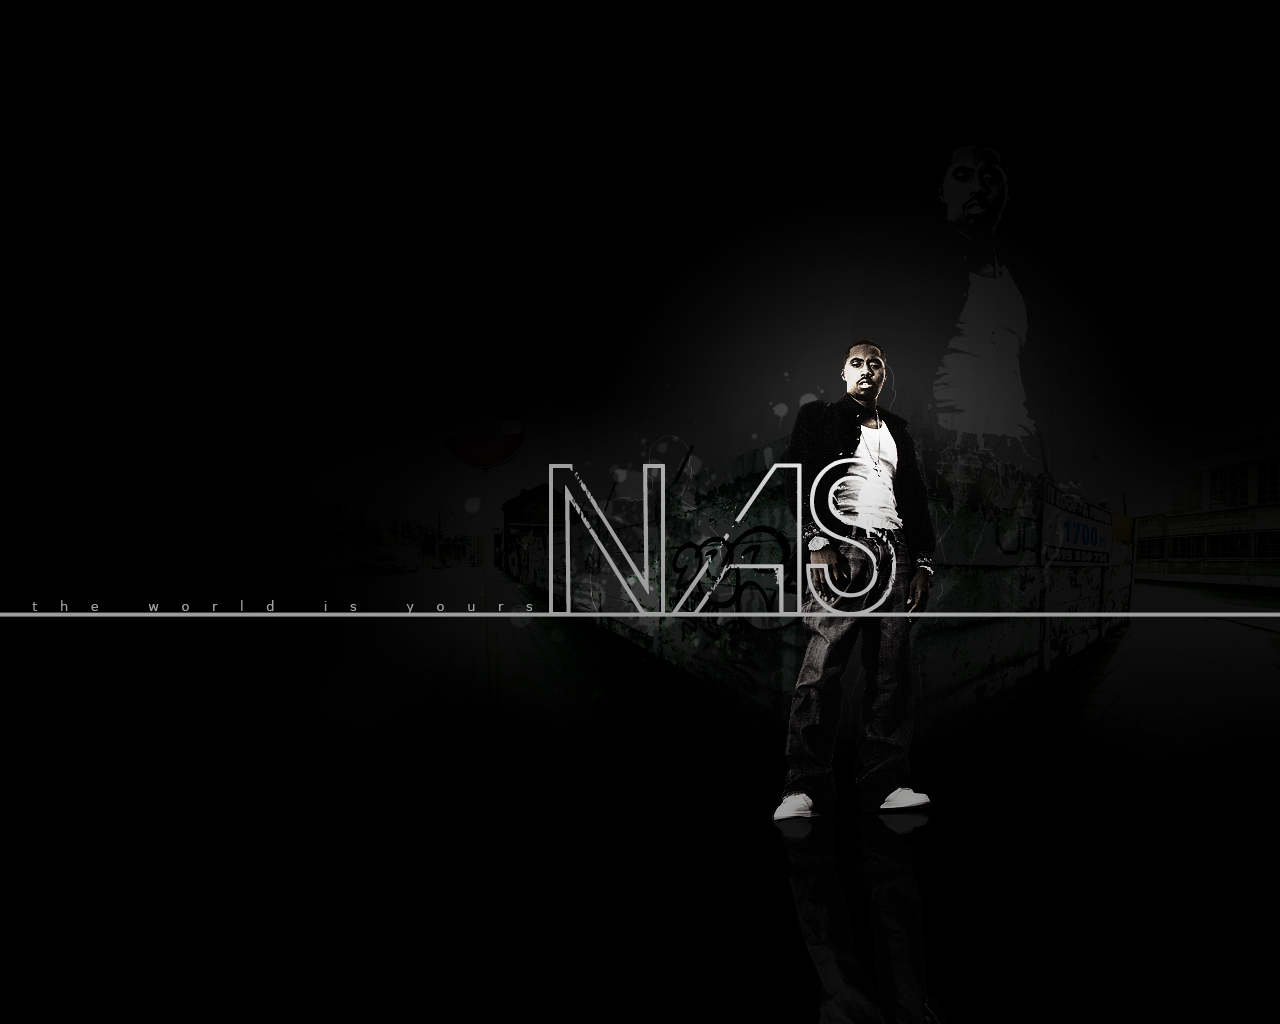 New York Wallpaper Hd Nas Images Nasty Nas Hd Wallpaper And Background Photos